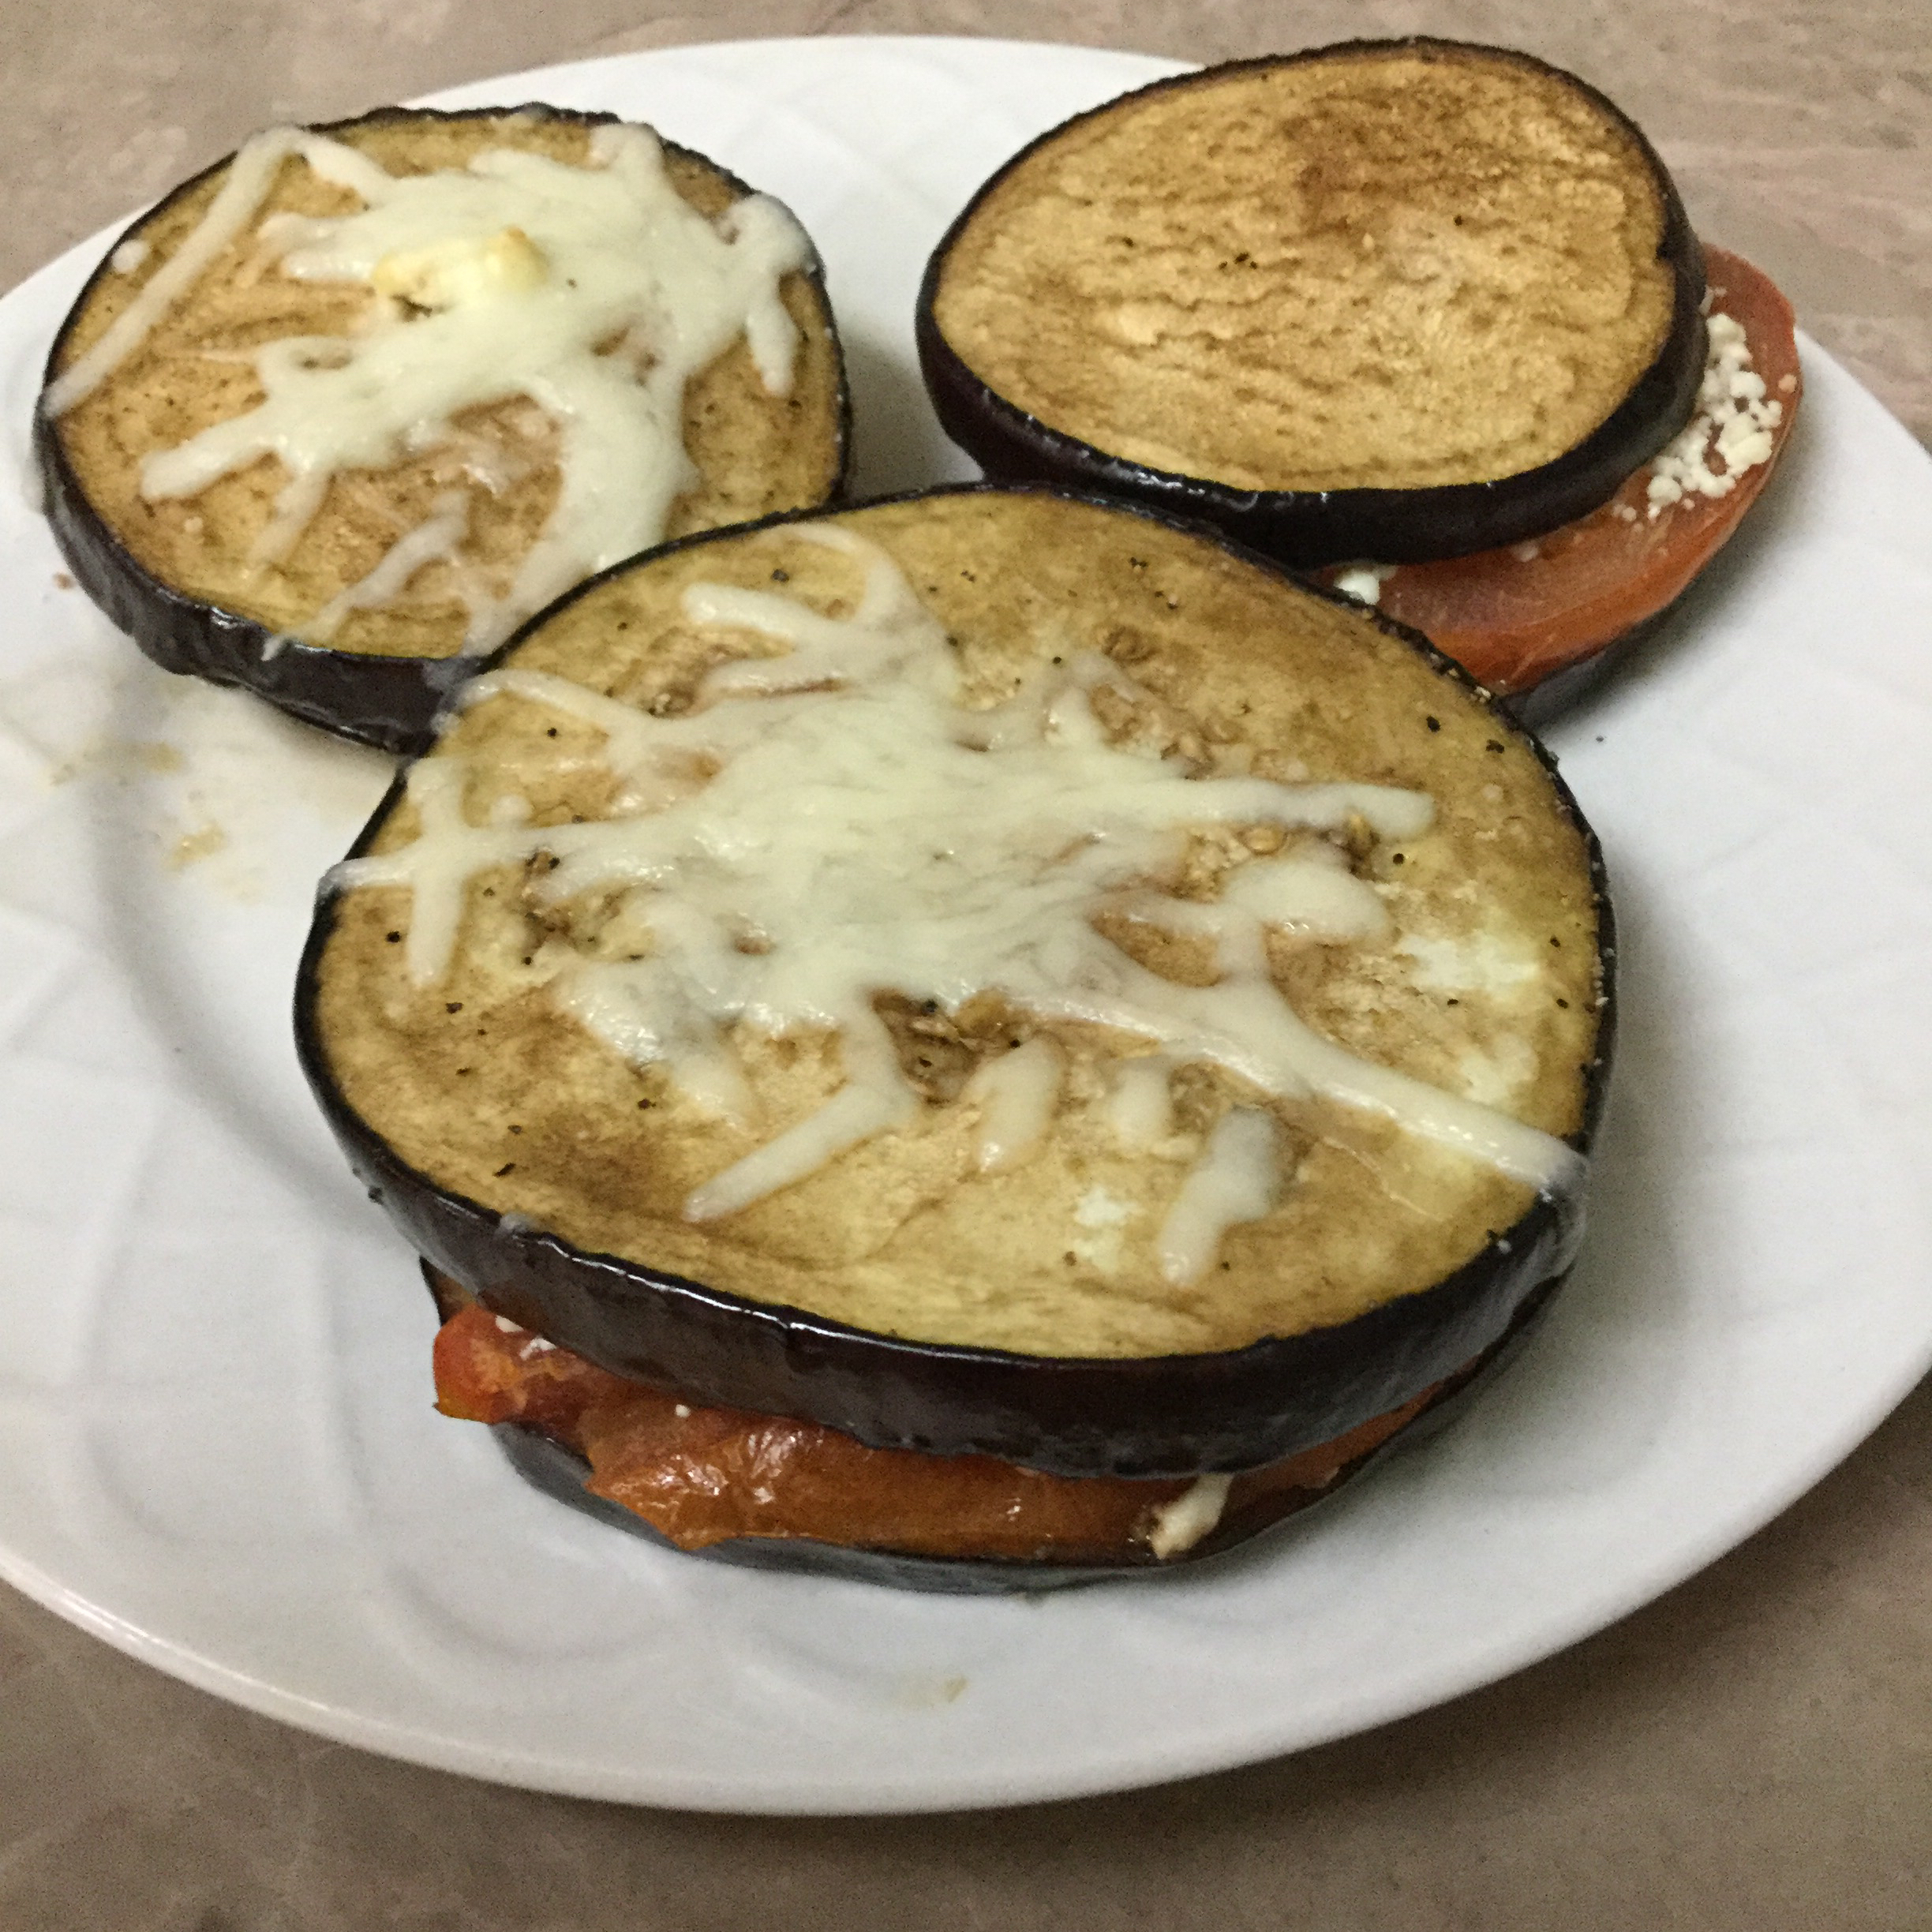 Grilled Eggplant, Tomato and Goat Cheese Lorena Tamez